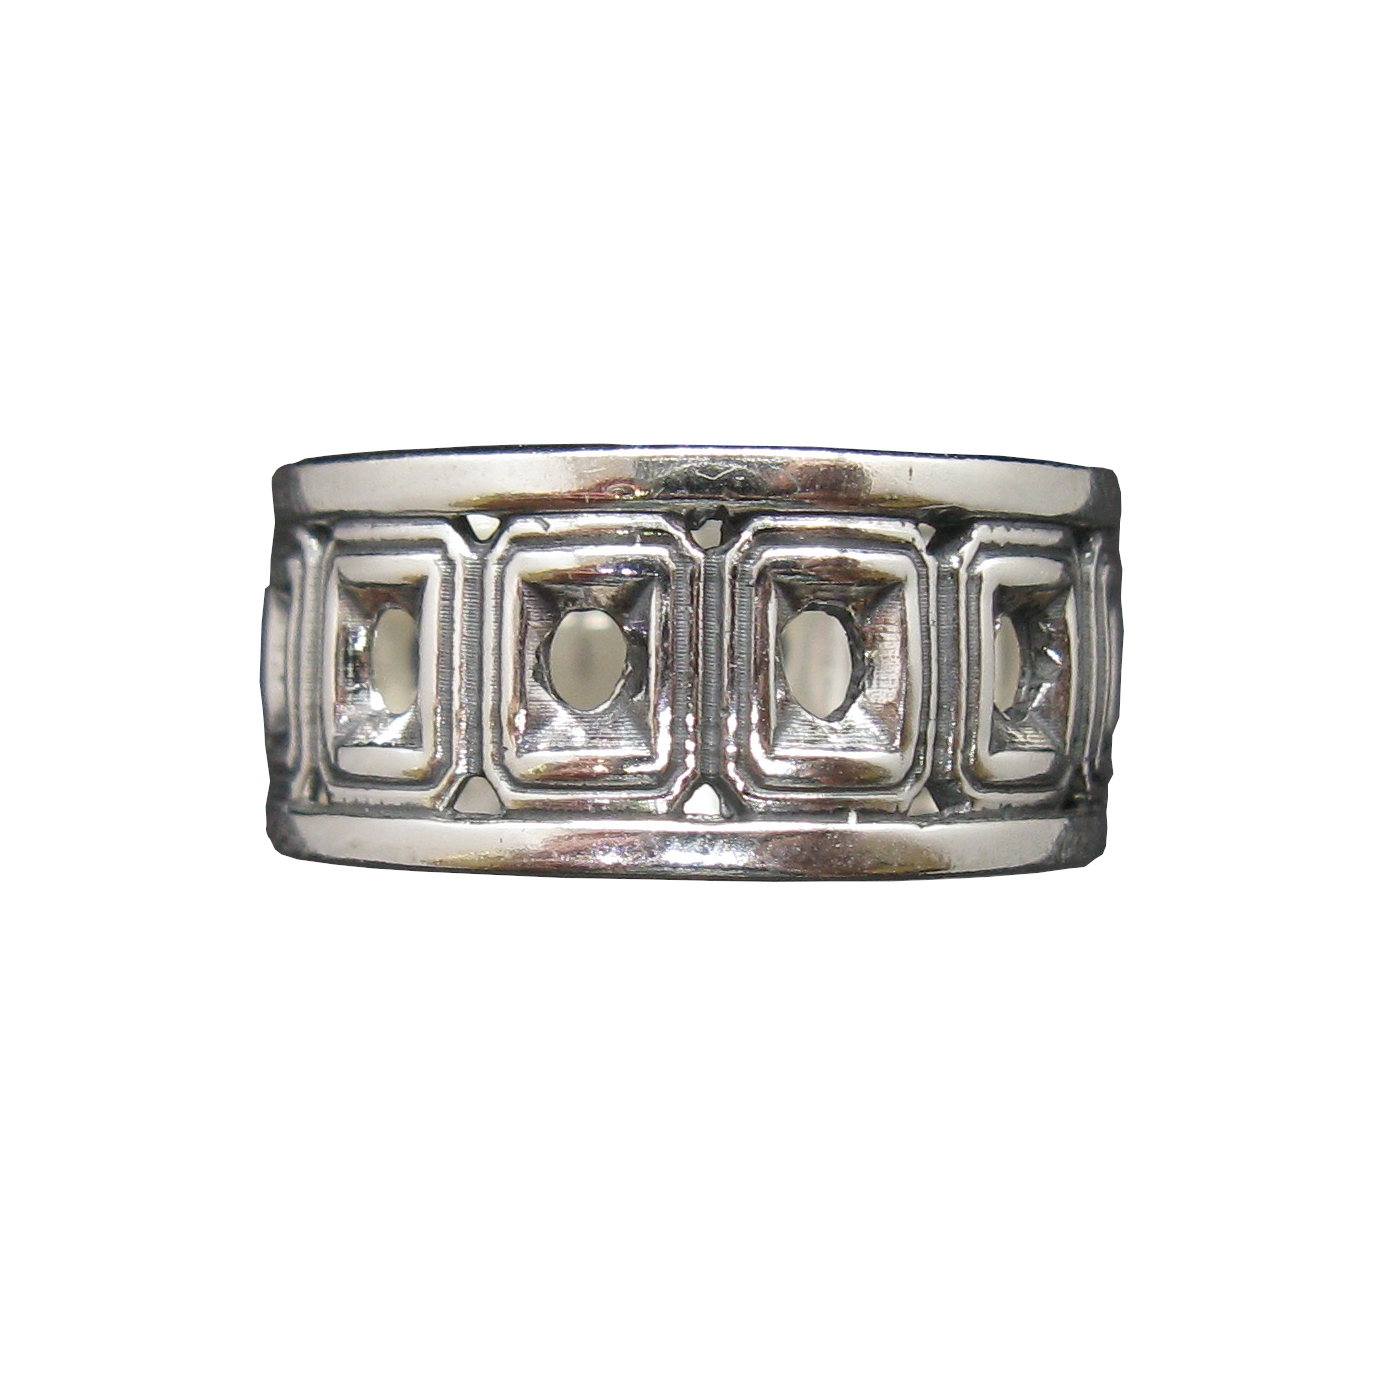 Silver ring - R002054